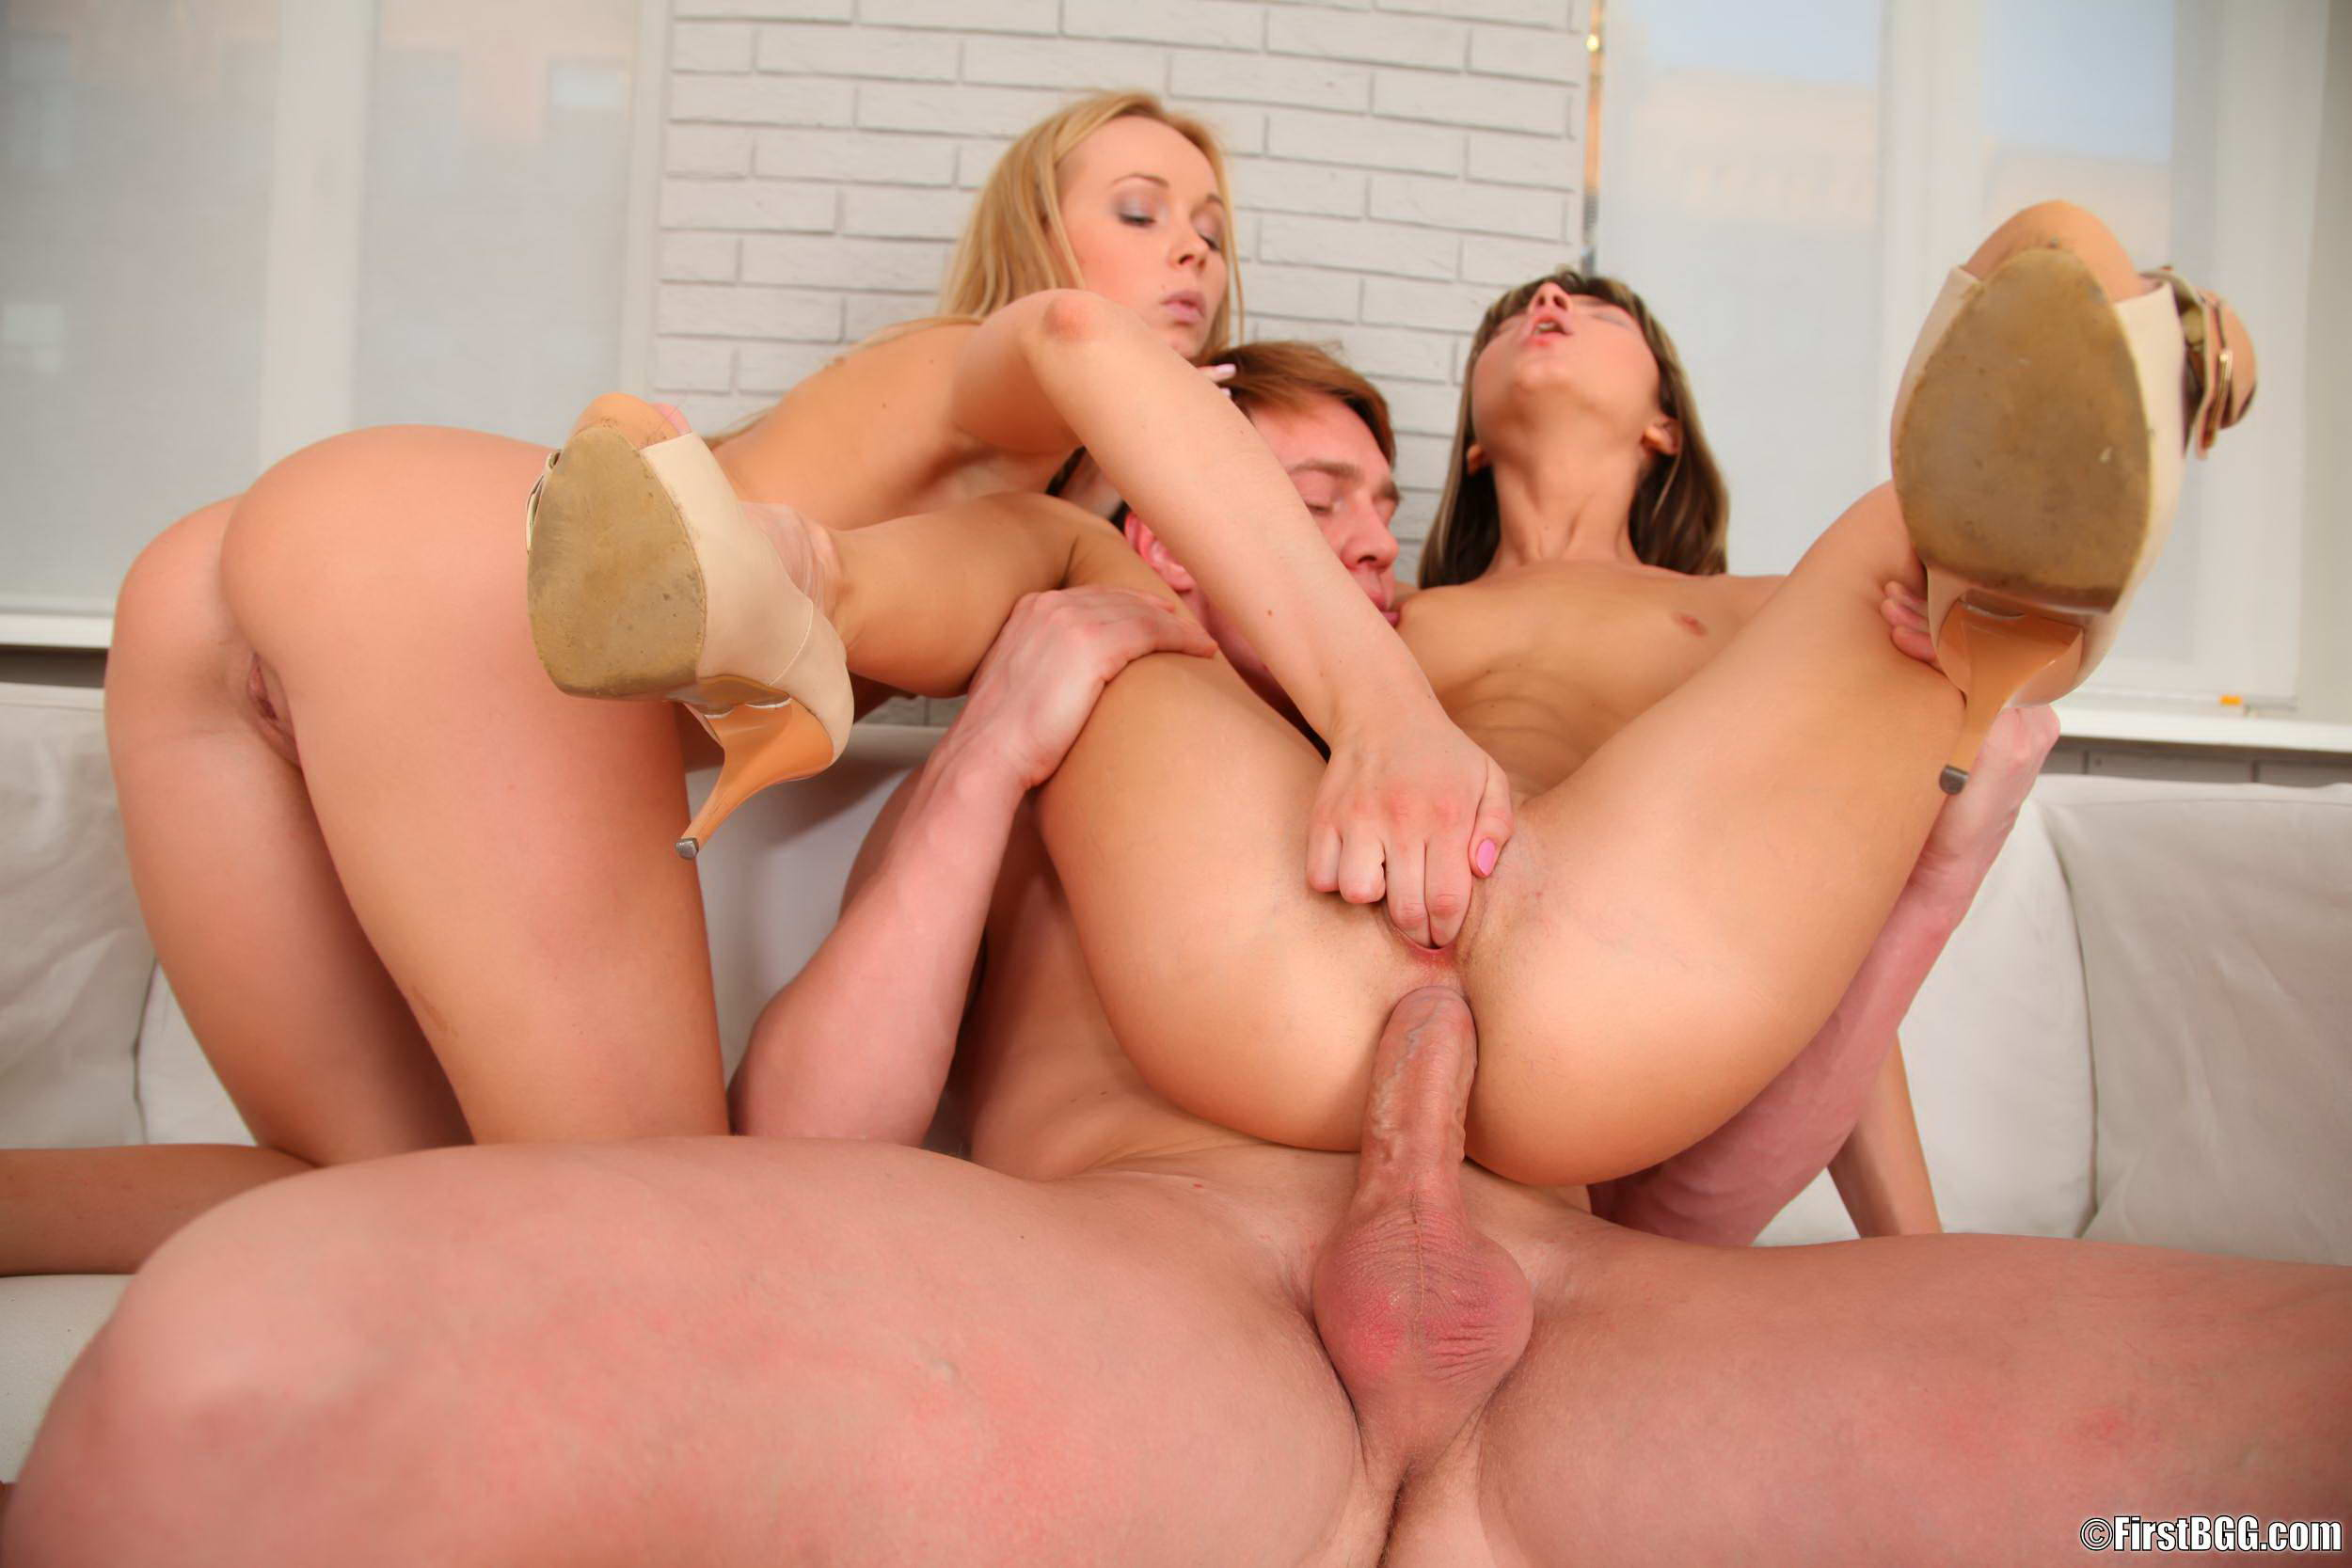 Boys having penetration